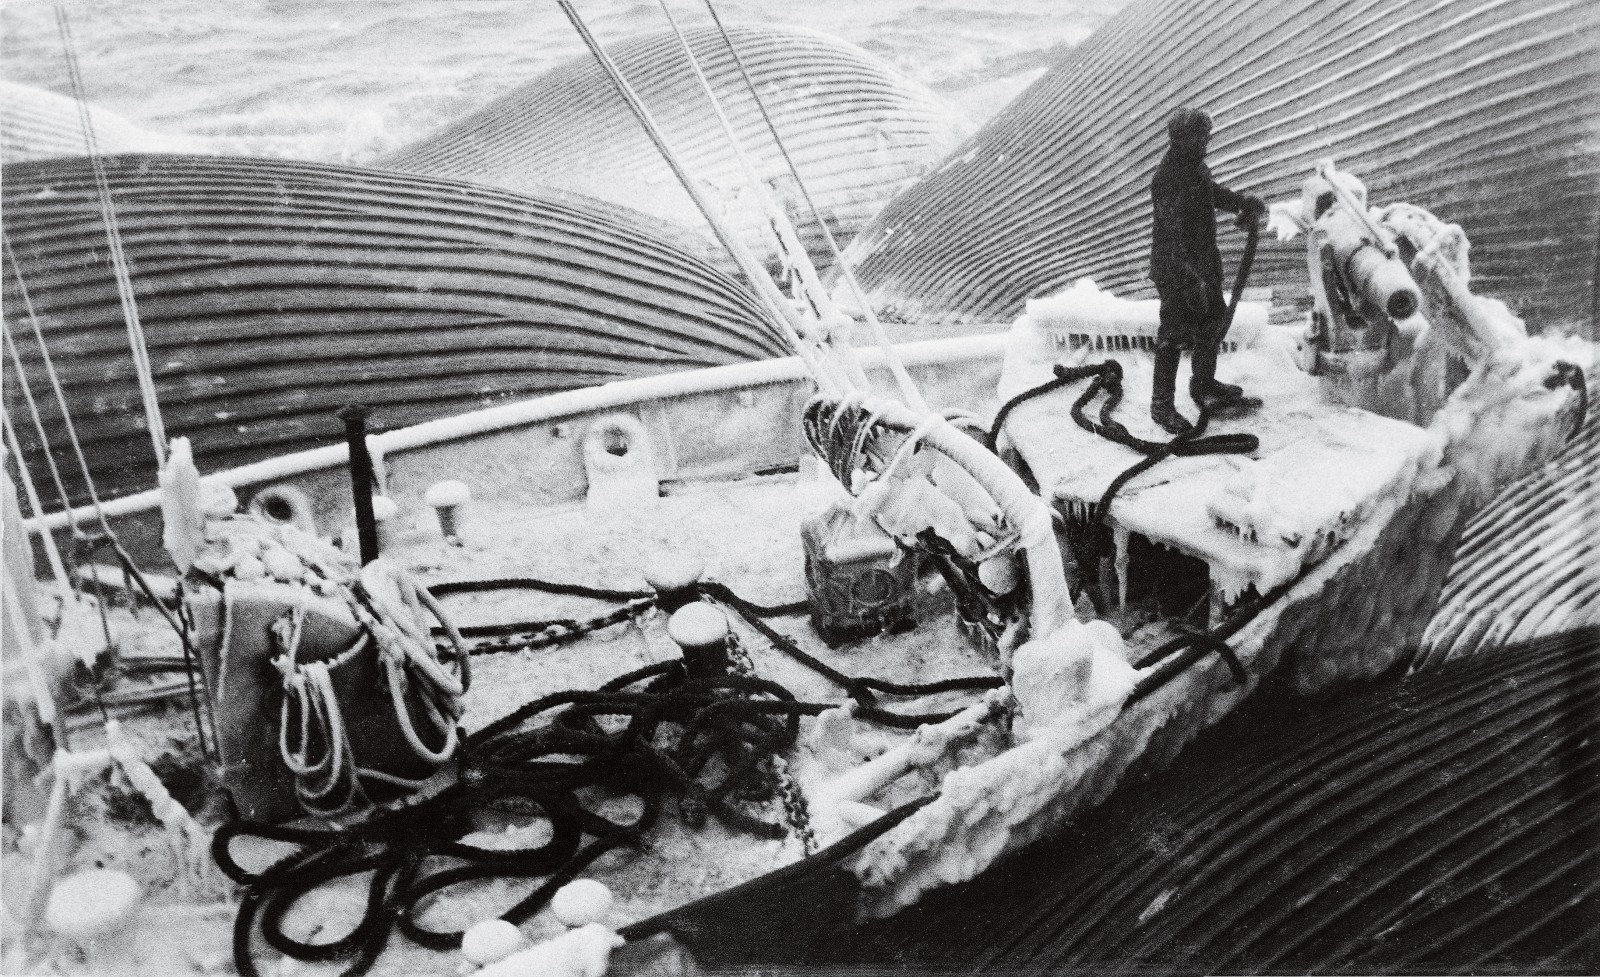 Although Antarctic conditions made whaling an even tougher proposition than normal—ropes and chains might have to be broken free of ice with sledge hammers and cold chisels—the abundance of whales in Antarctica more than compensated for the difficulties. With five to seven chasers bringing back a steady flow of carcasses, the factory ships could have trouble keeping up. The more quickly a whale was processed—less than 24 hours was the aim—the better the quality of the oil obtained and the more it fetched. Whaling was—and is—ultimately about money, though most whale products, such as baleen and oil, have been replaced by synthetics.